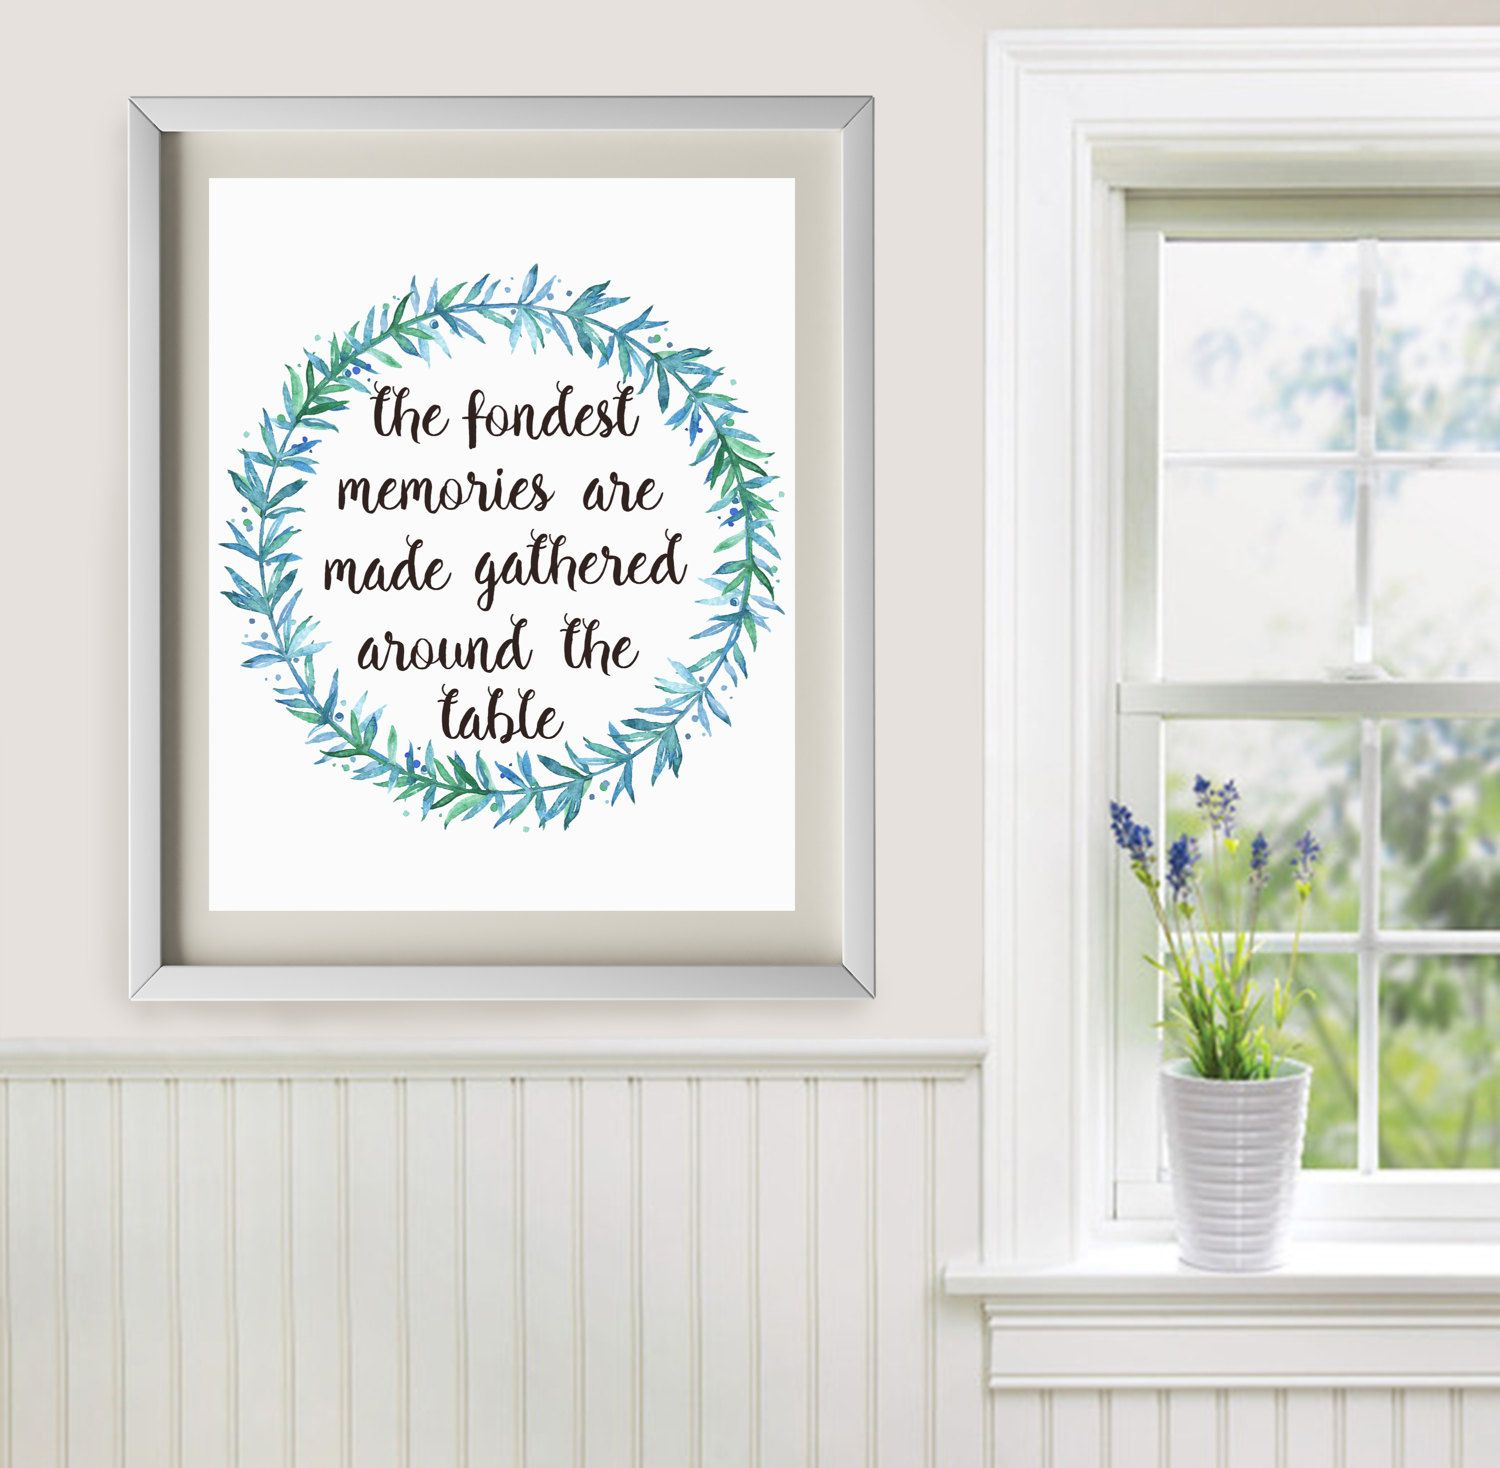 the fondest memories are made gathered around the table printable